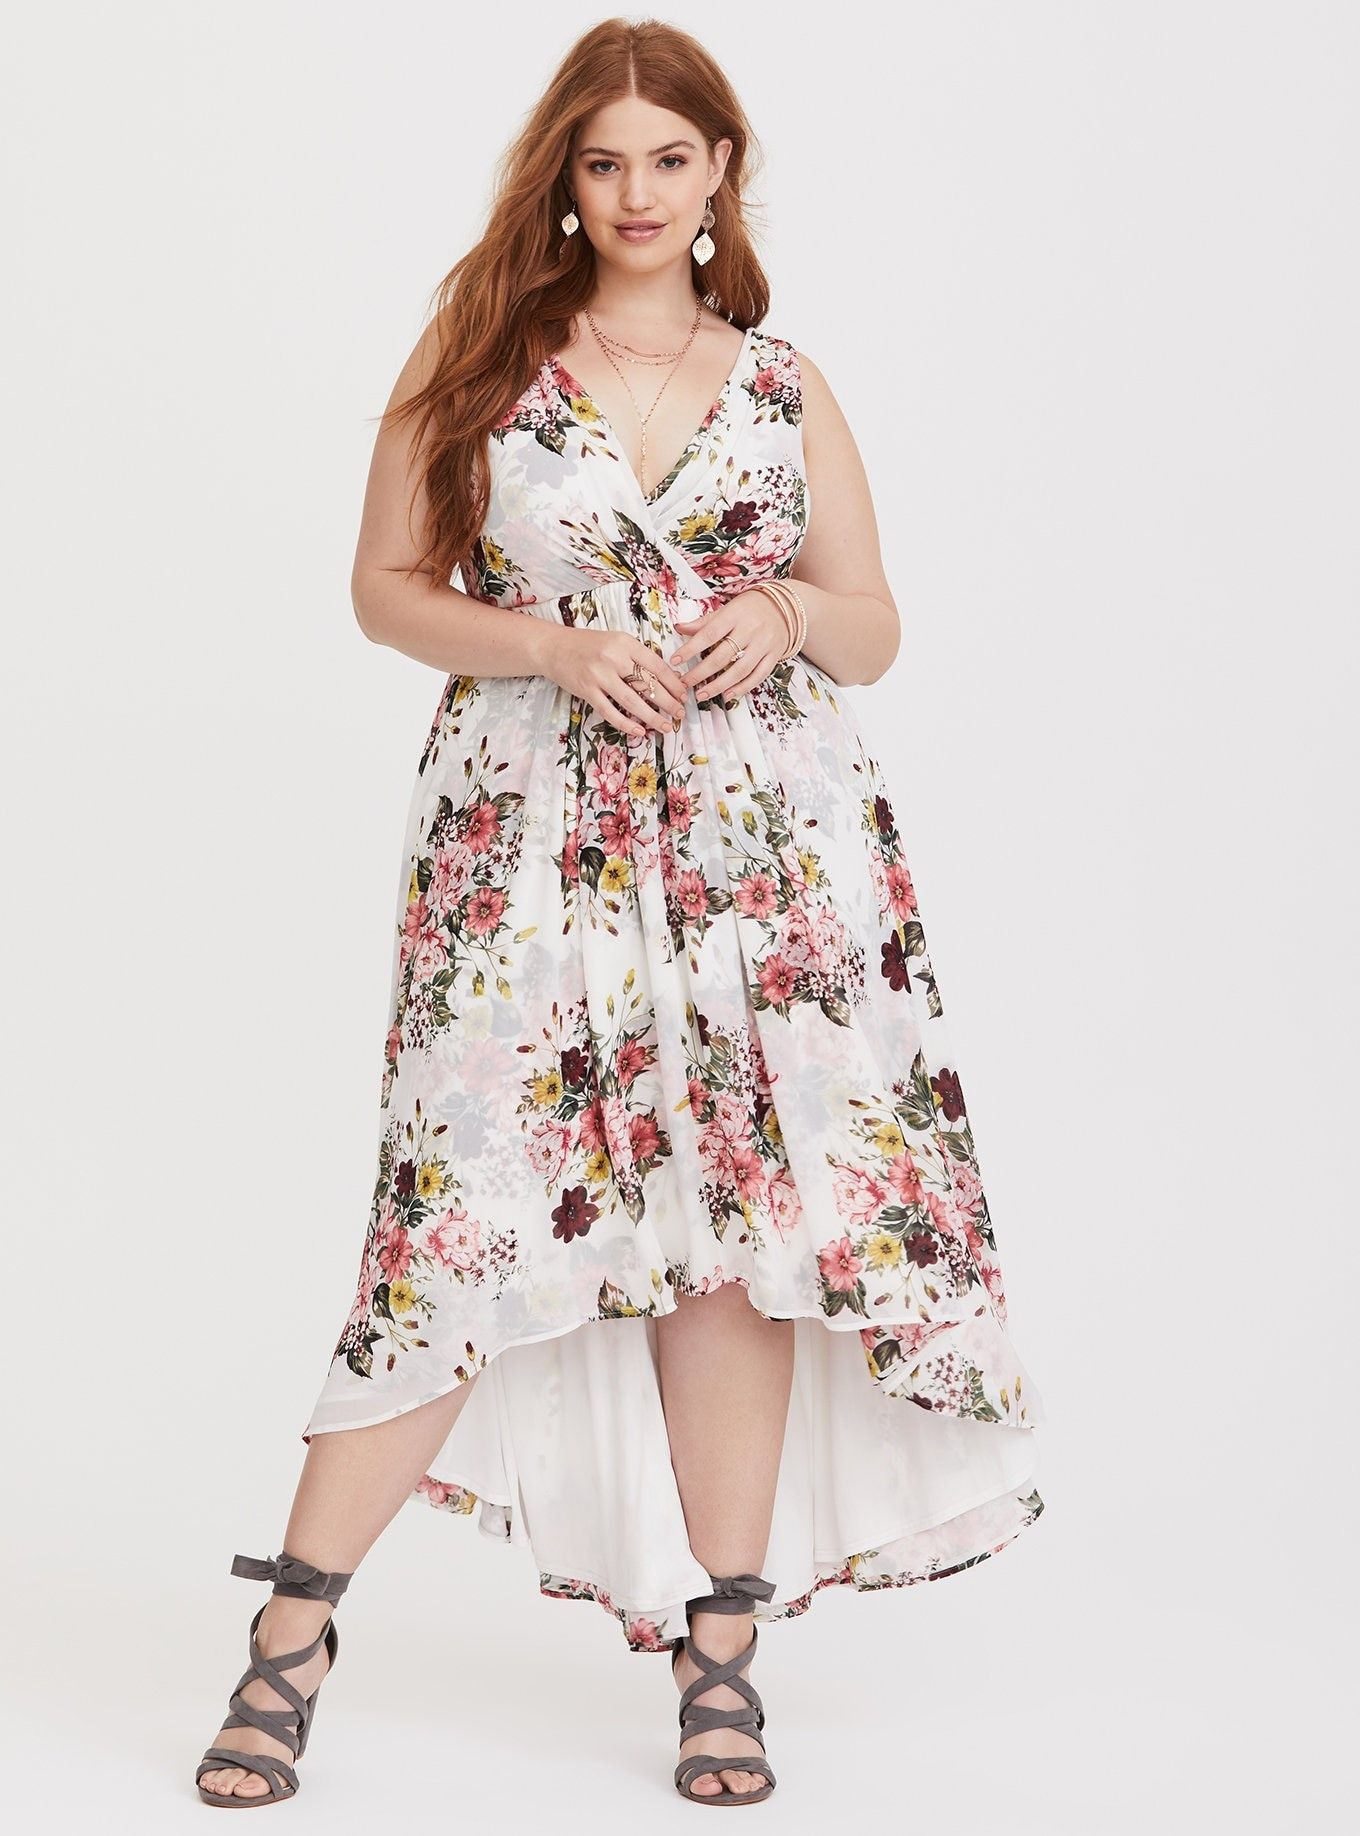 1b5be35f90f Special Occasion White Floral Chiffon Dress - A hi-lo hem adds movement to  an airy chiffon midi dress that drapes beautifully from the pleated bodice  and ...